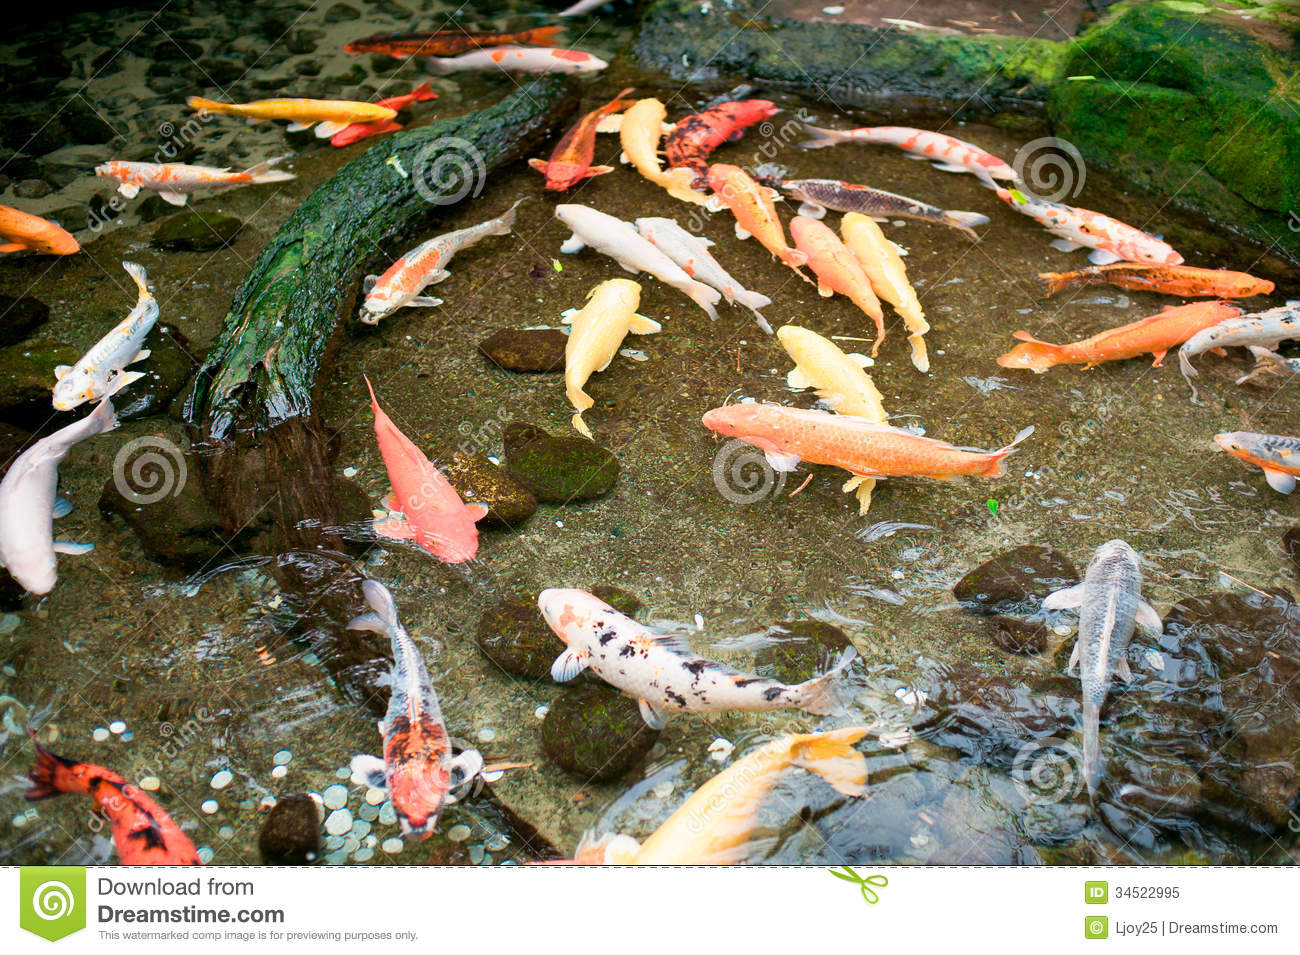 Koi fish in water stock image image of peace landscape for Koi fish water